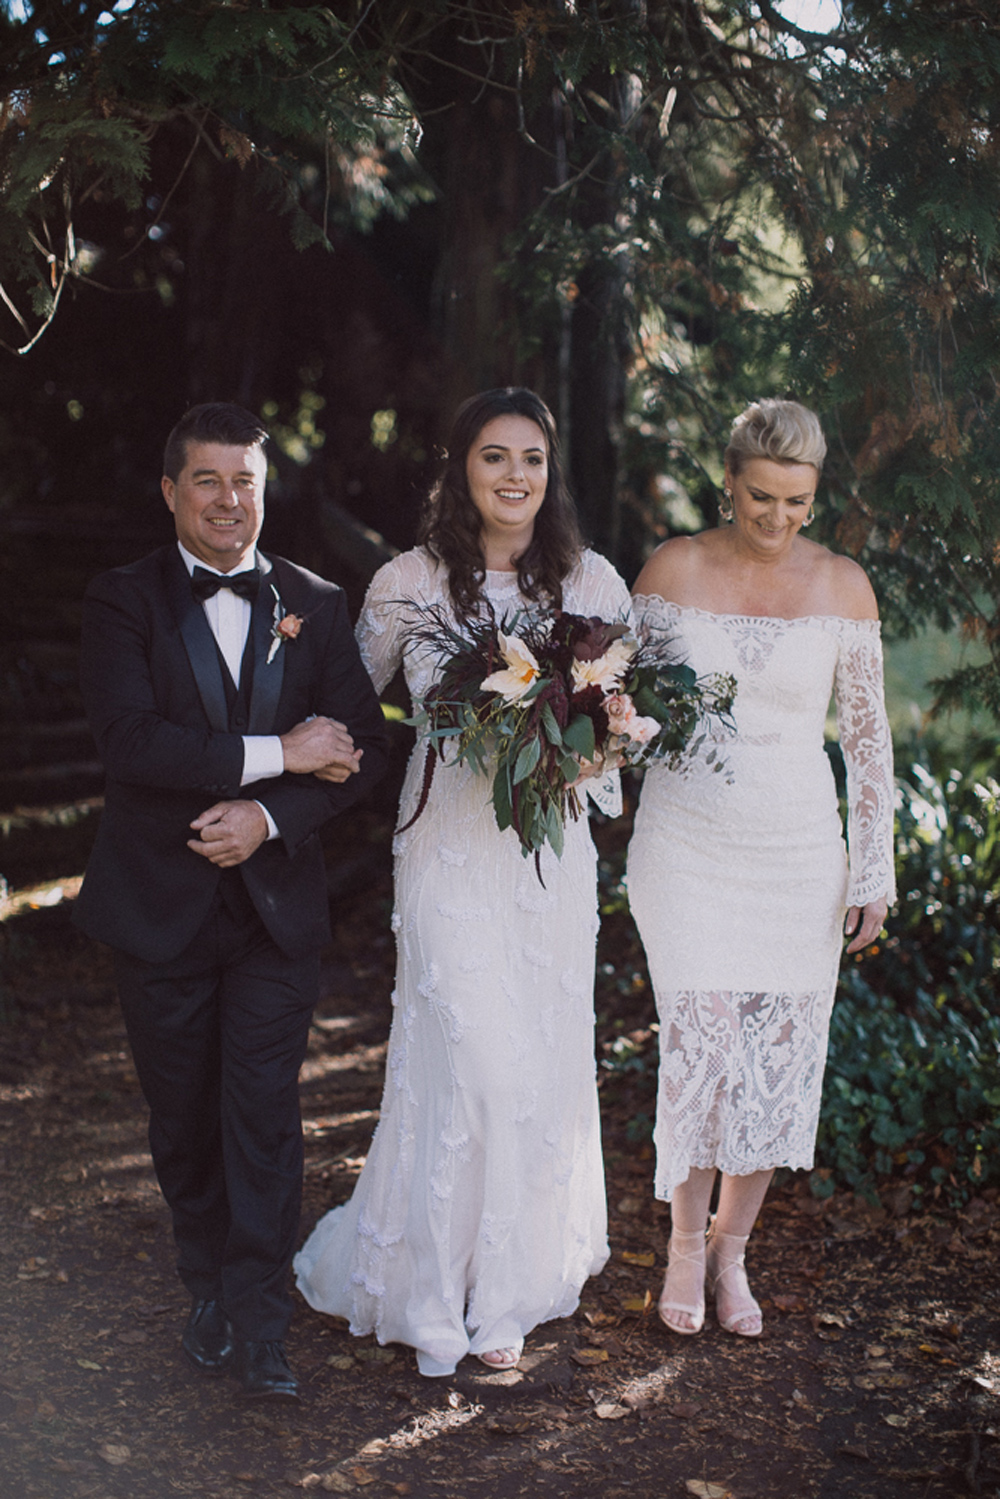 Wedding photography bowral southern highlands australian wedding photographer milton park